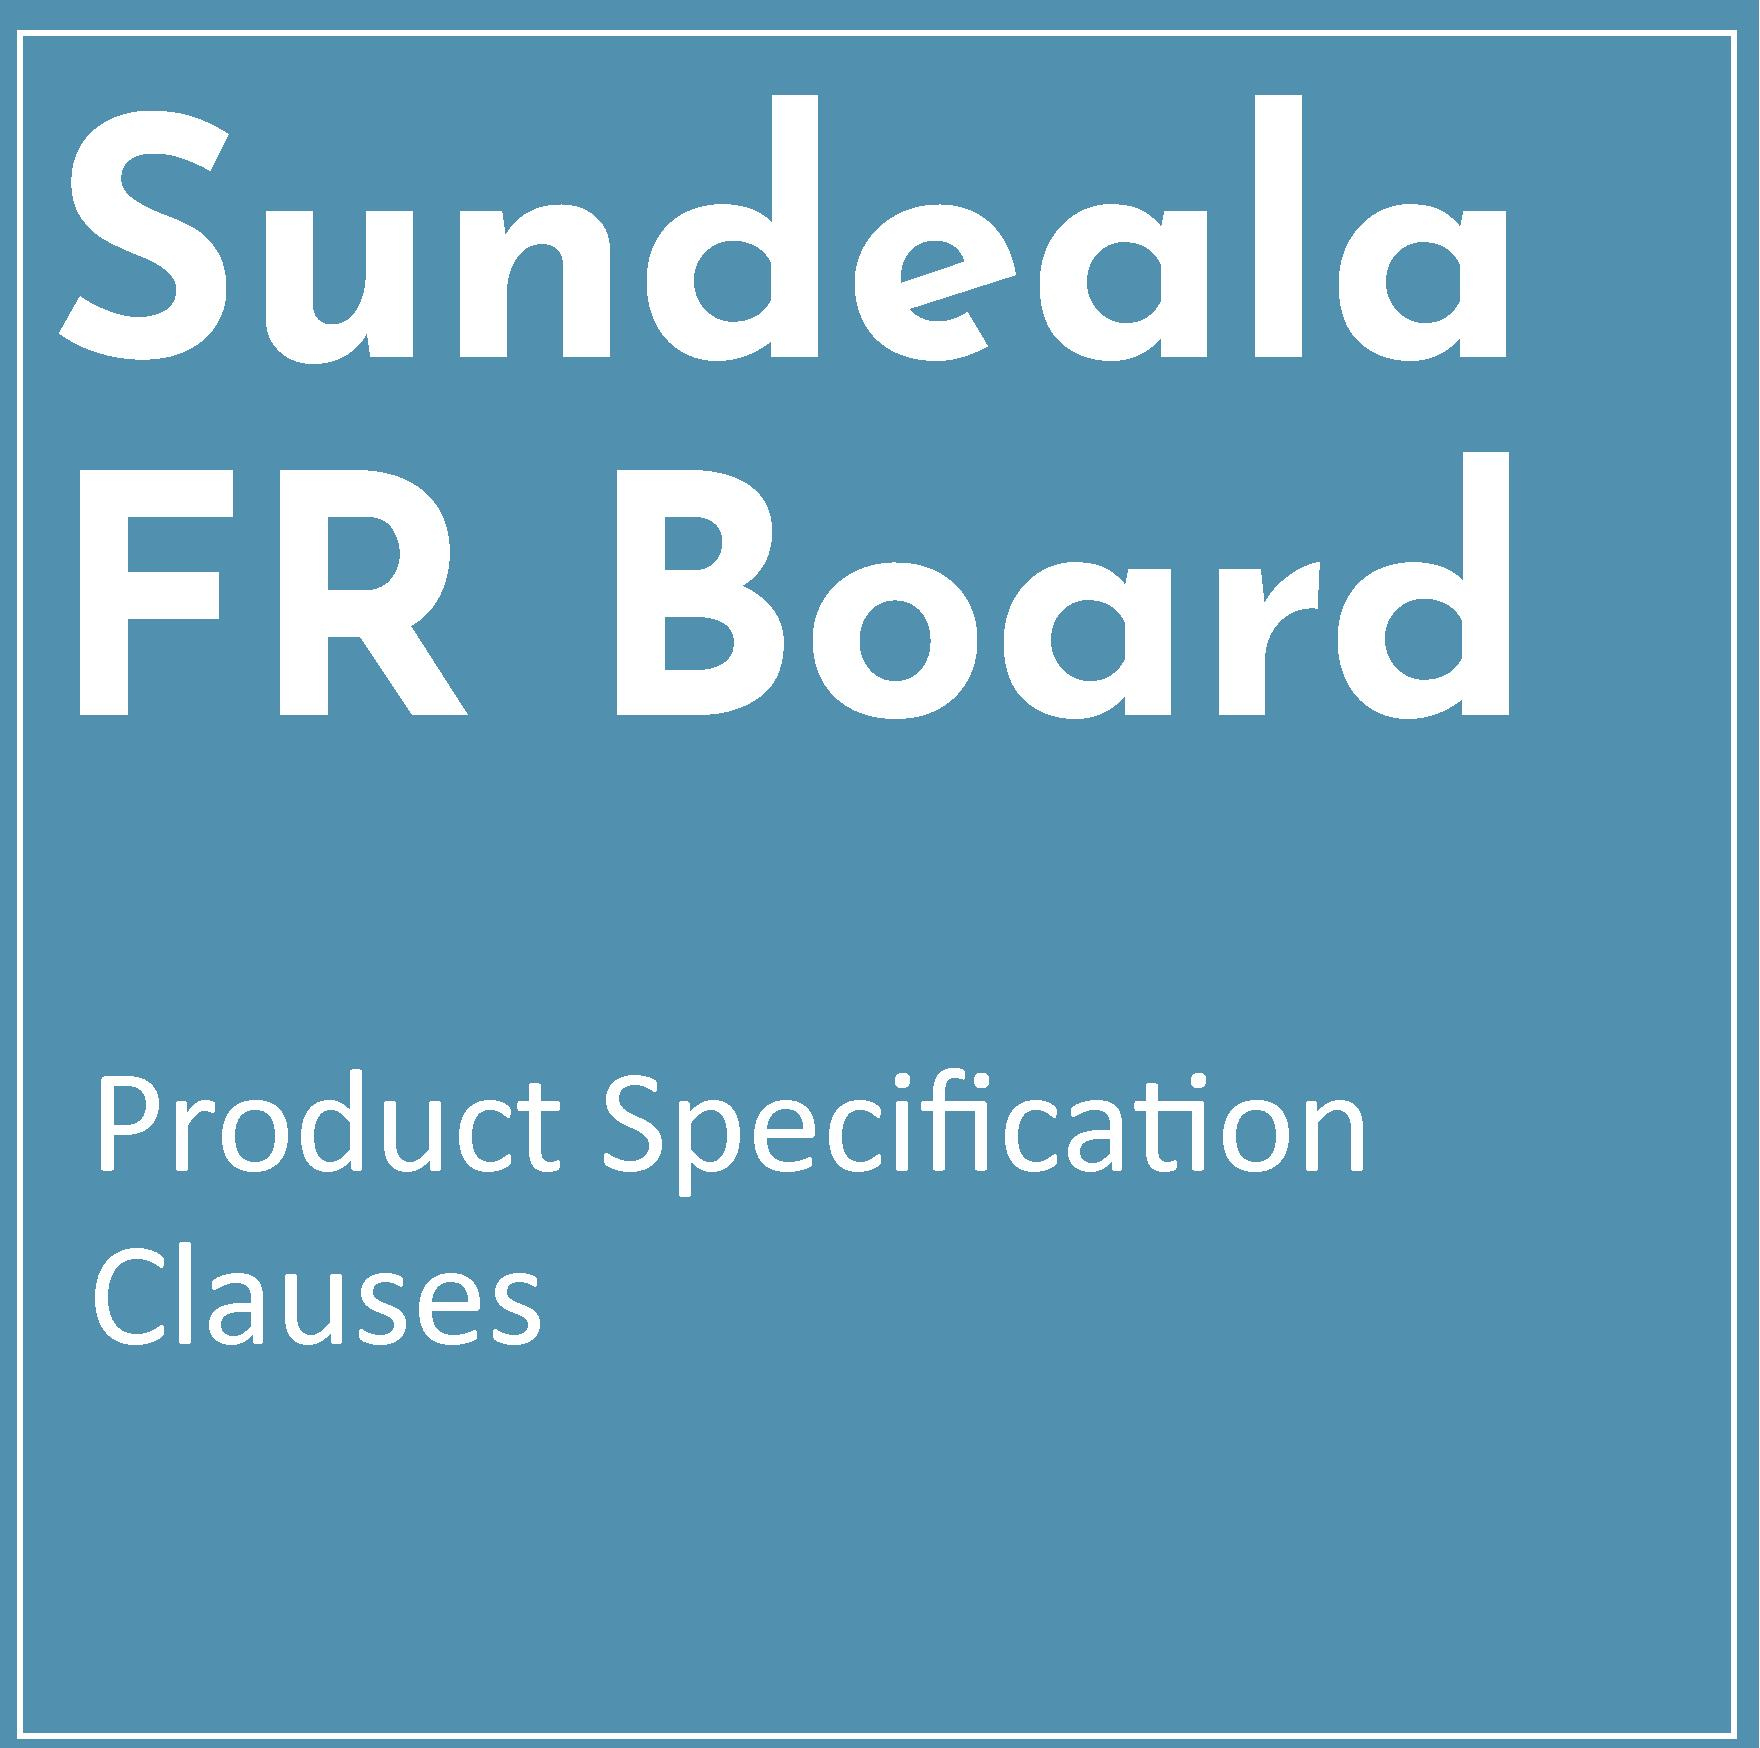 Product Specification Clauses